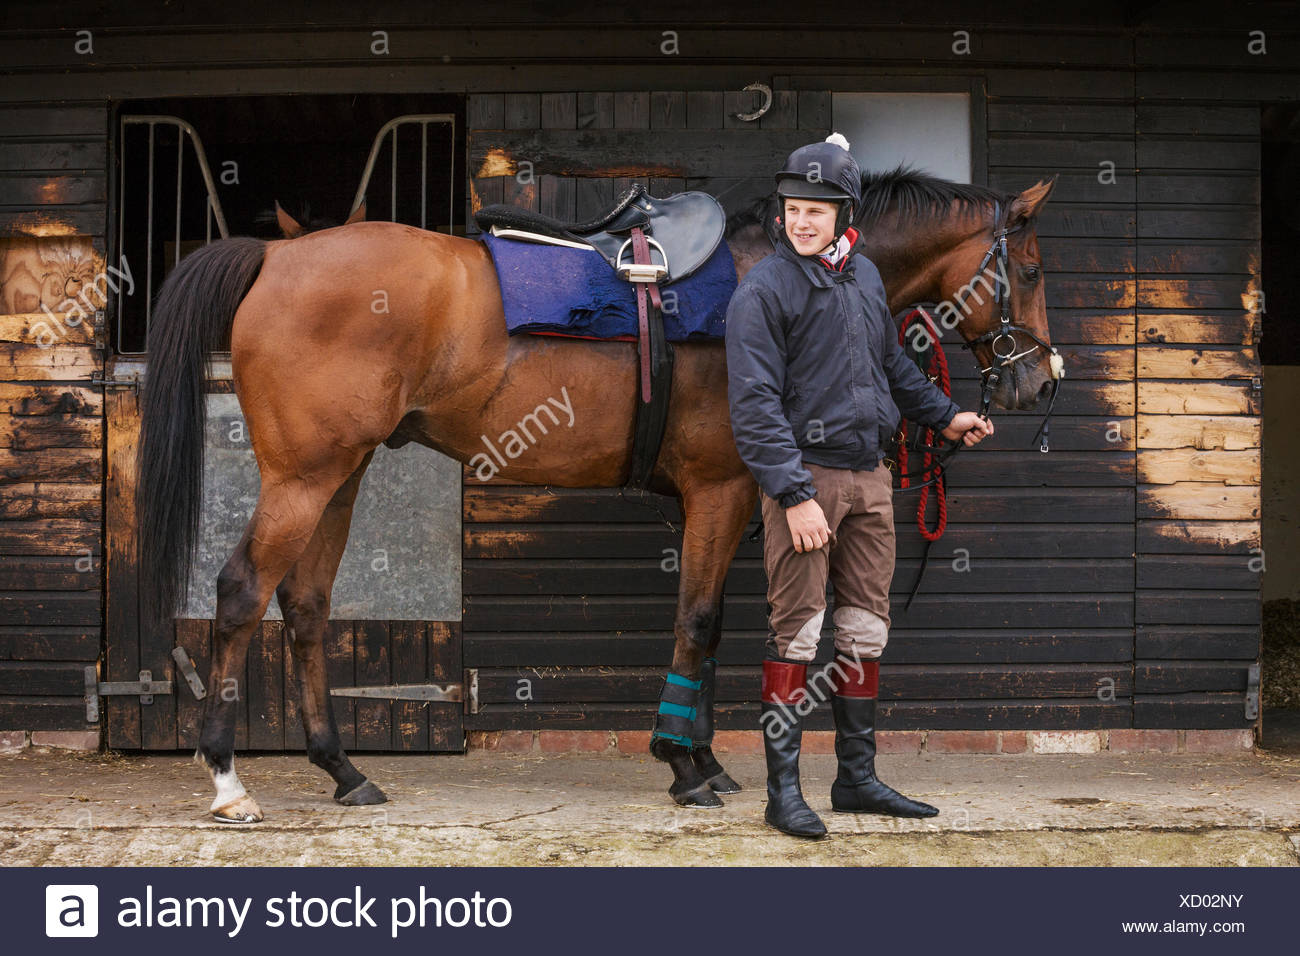 Man Wearing Riding Gear Standing Outside A Box Stall At A Stable Holding A Brown Horse Stock Photo Alamy